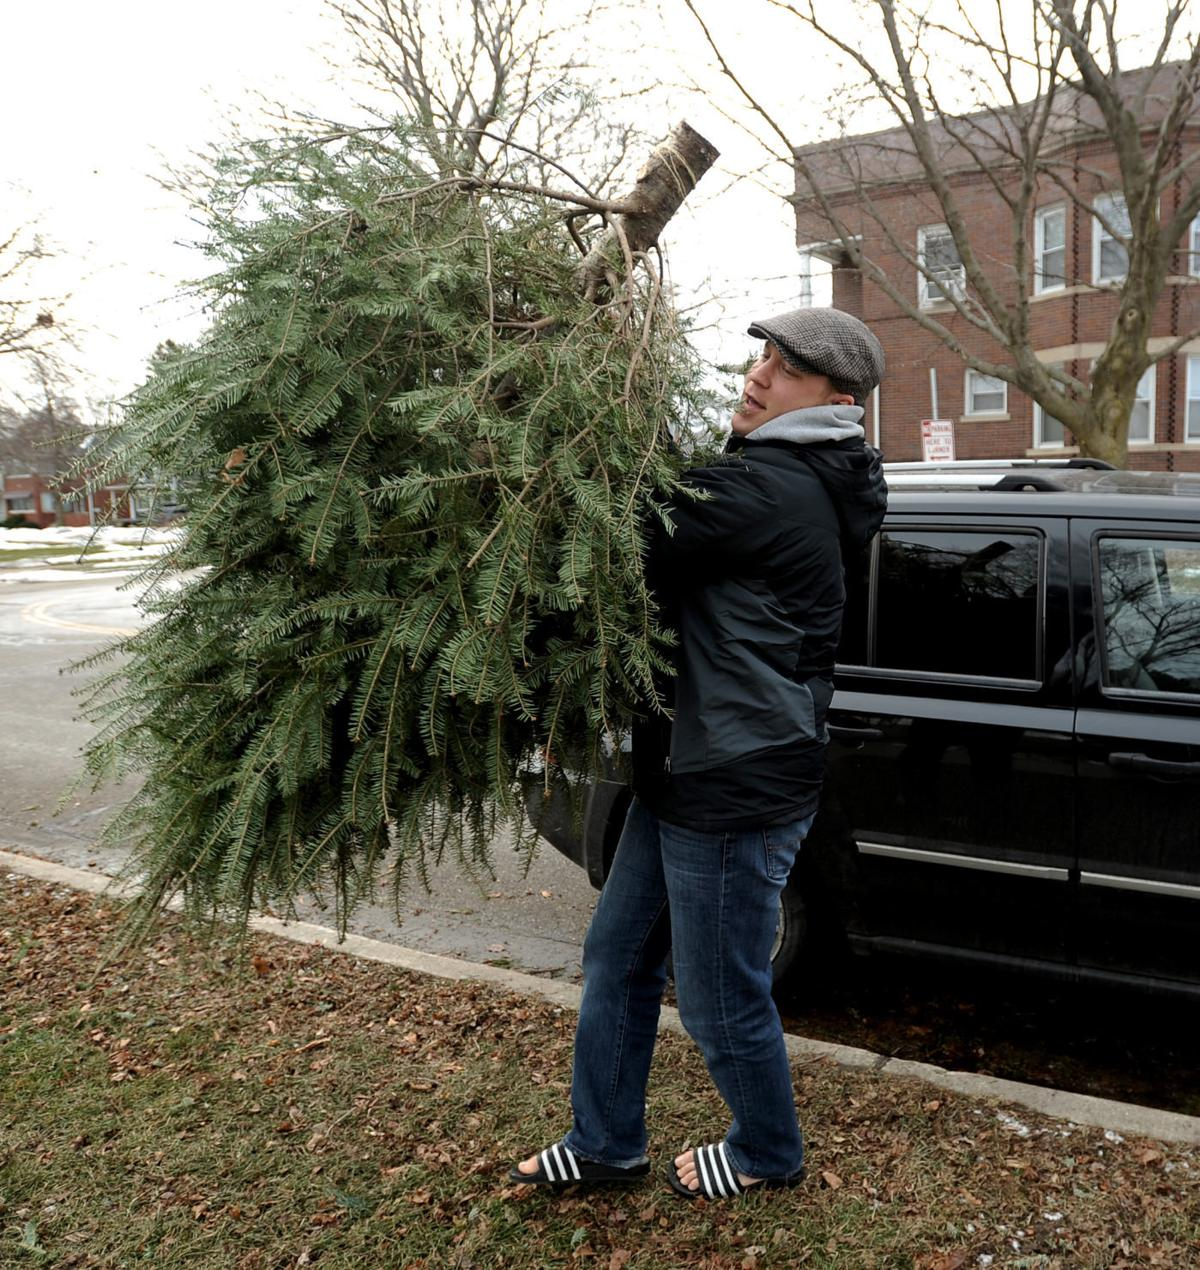 Disposing Of Christmas Trees: Kenosha, Pleasant Prairie Set Christmas Tree Disposal